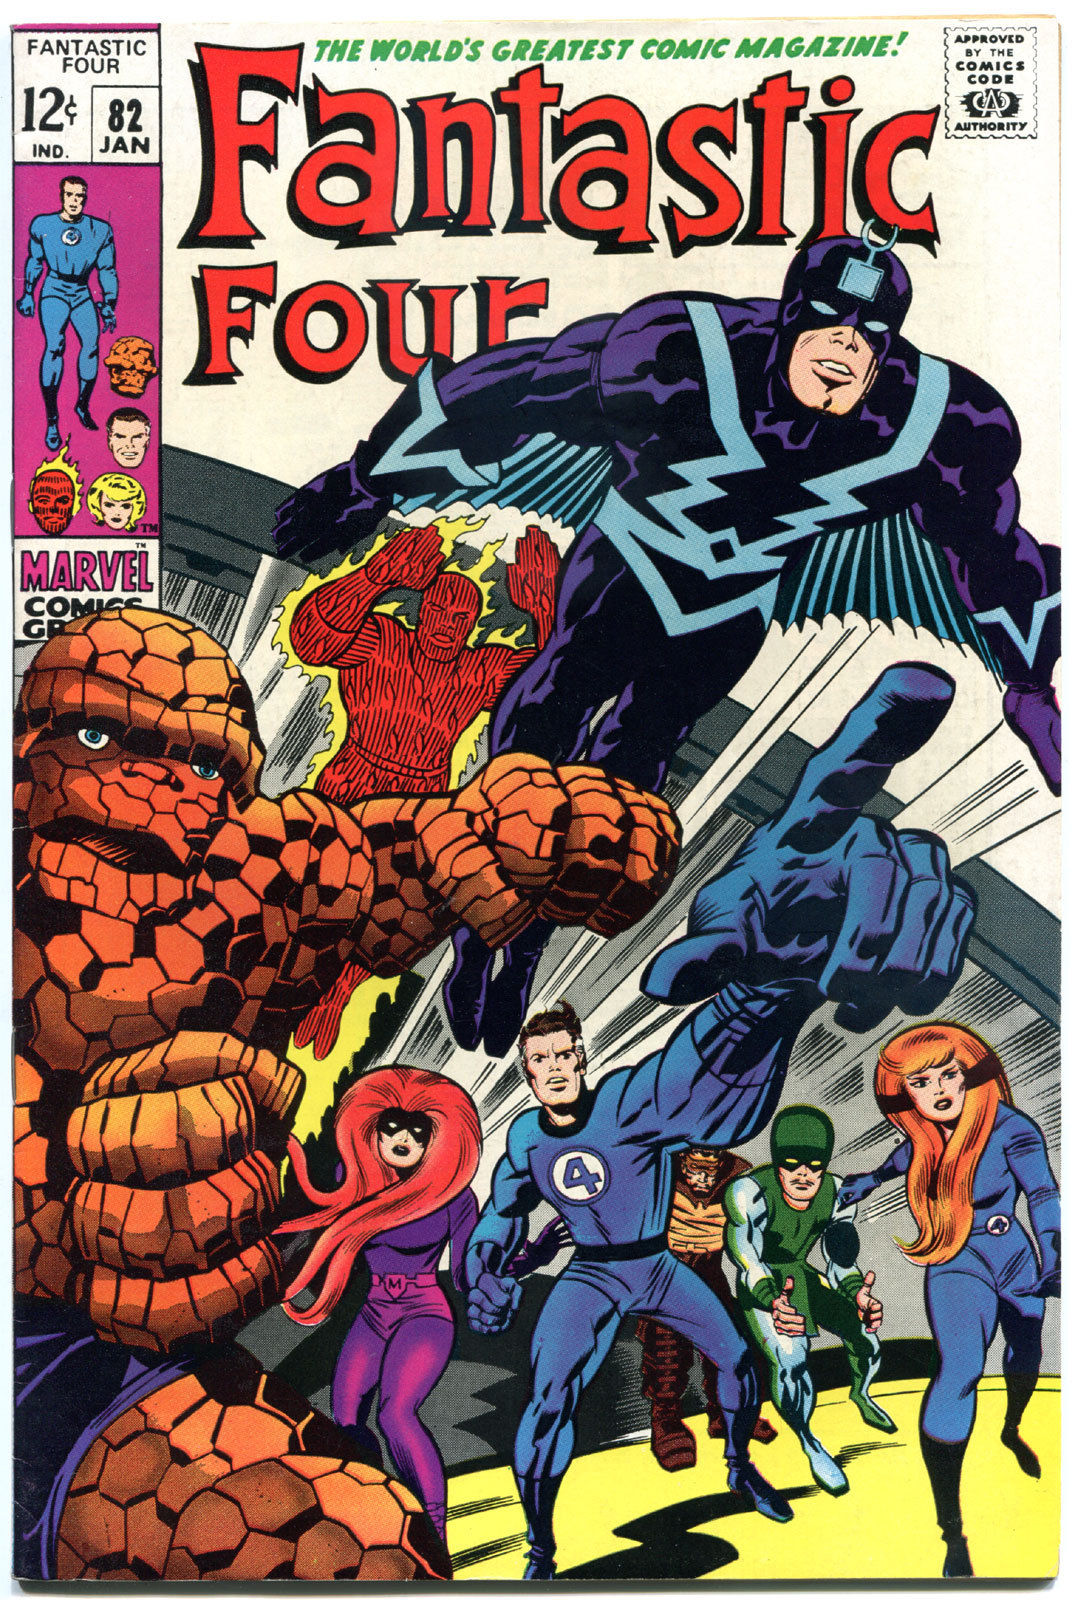 FANTASTIC FOUR #82, VF, InHumans, Jack Kirby, 1961, more FF in store, Marvel